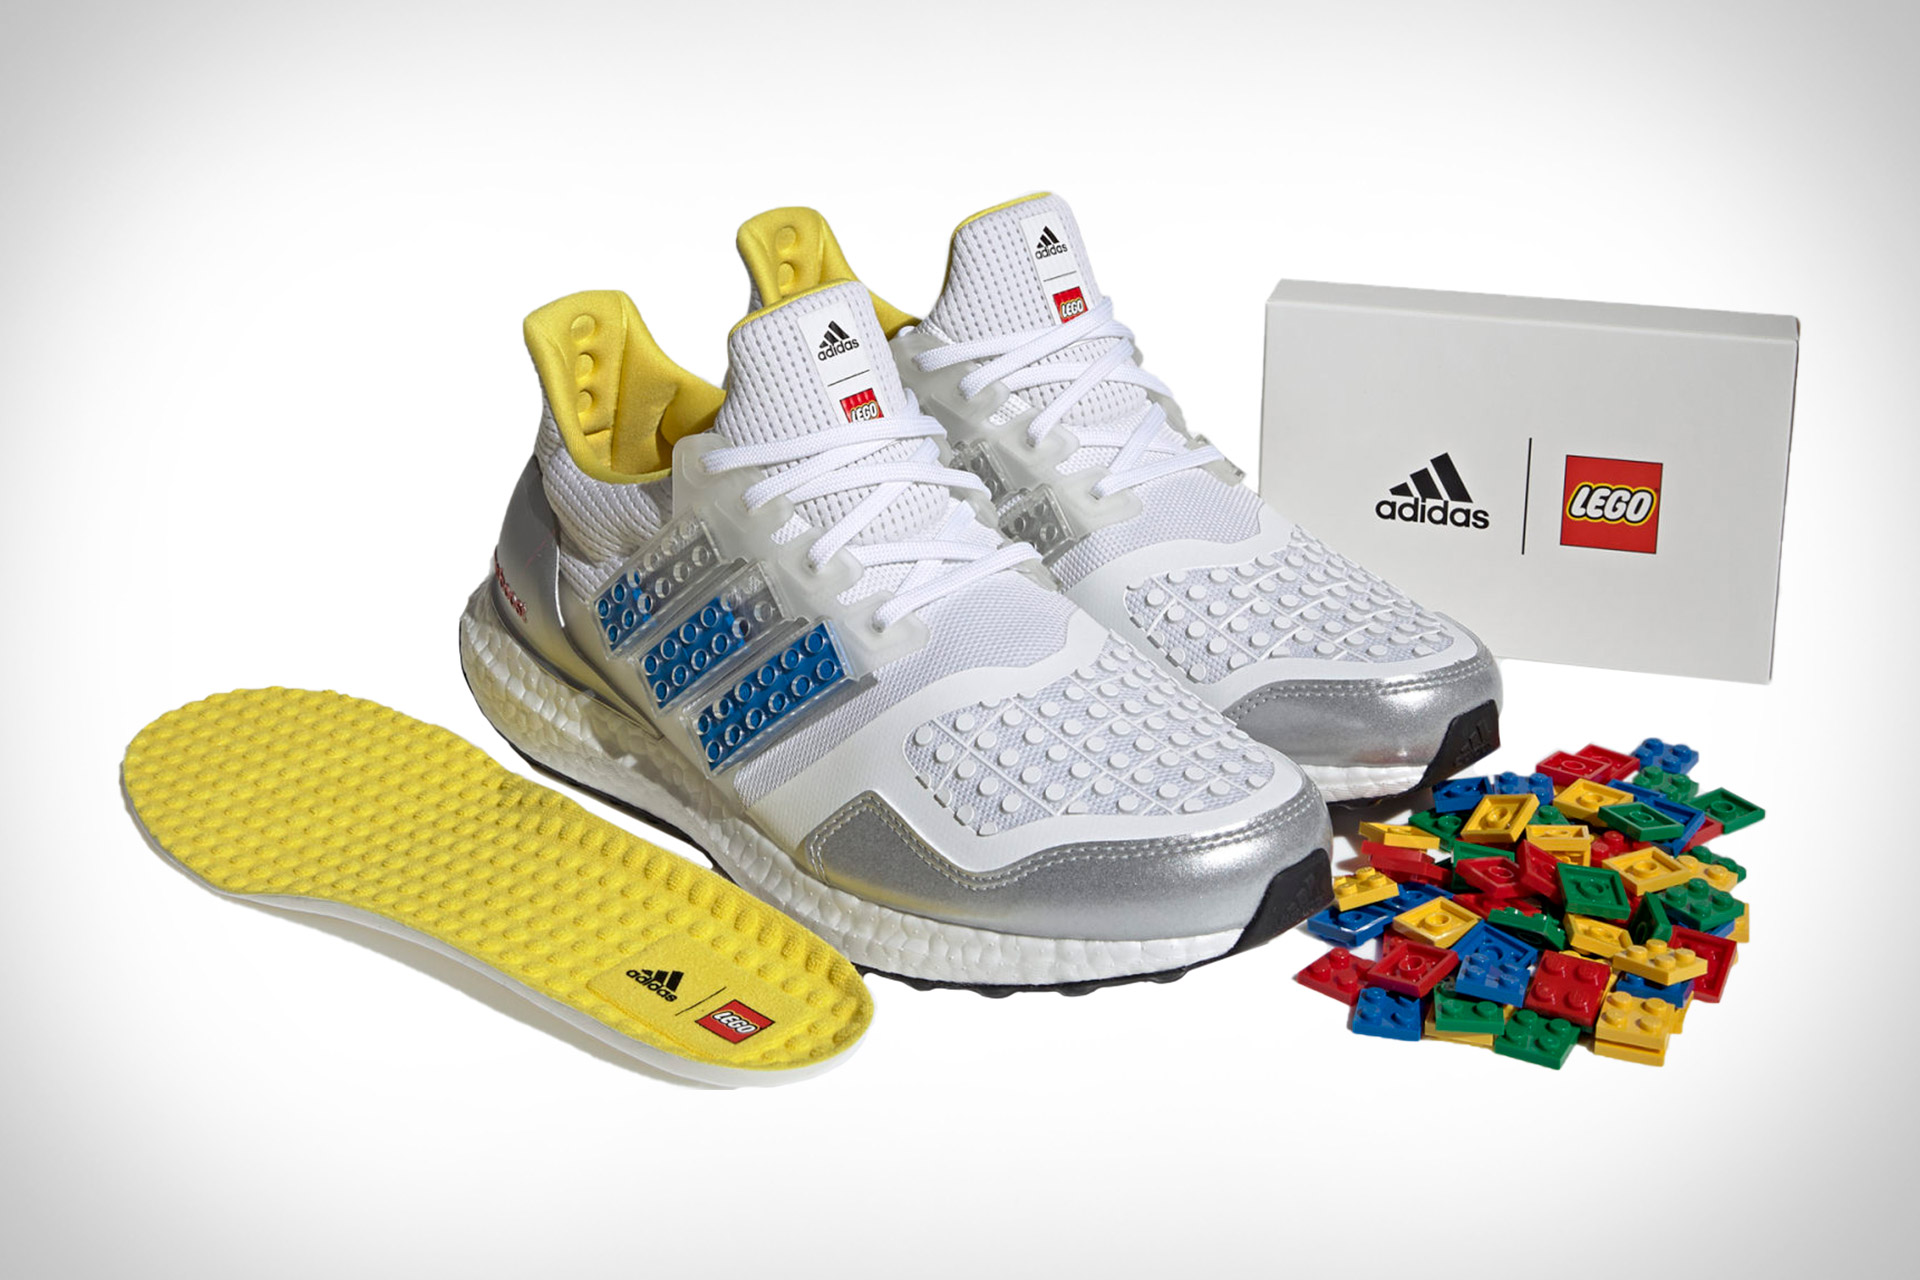 Adidas Ultraboost DNA x Lego Plate Sneakers   Uncrate